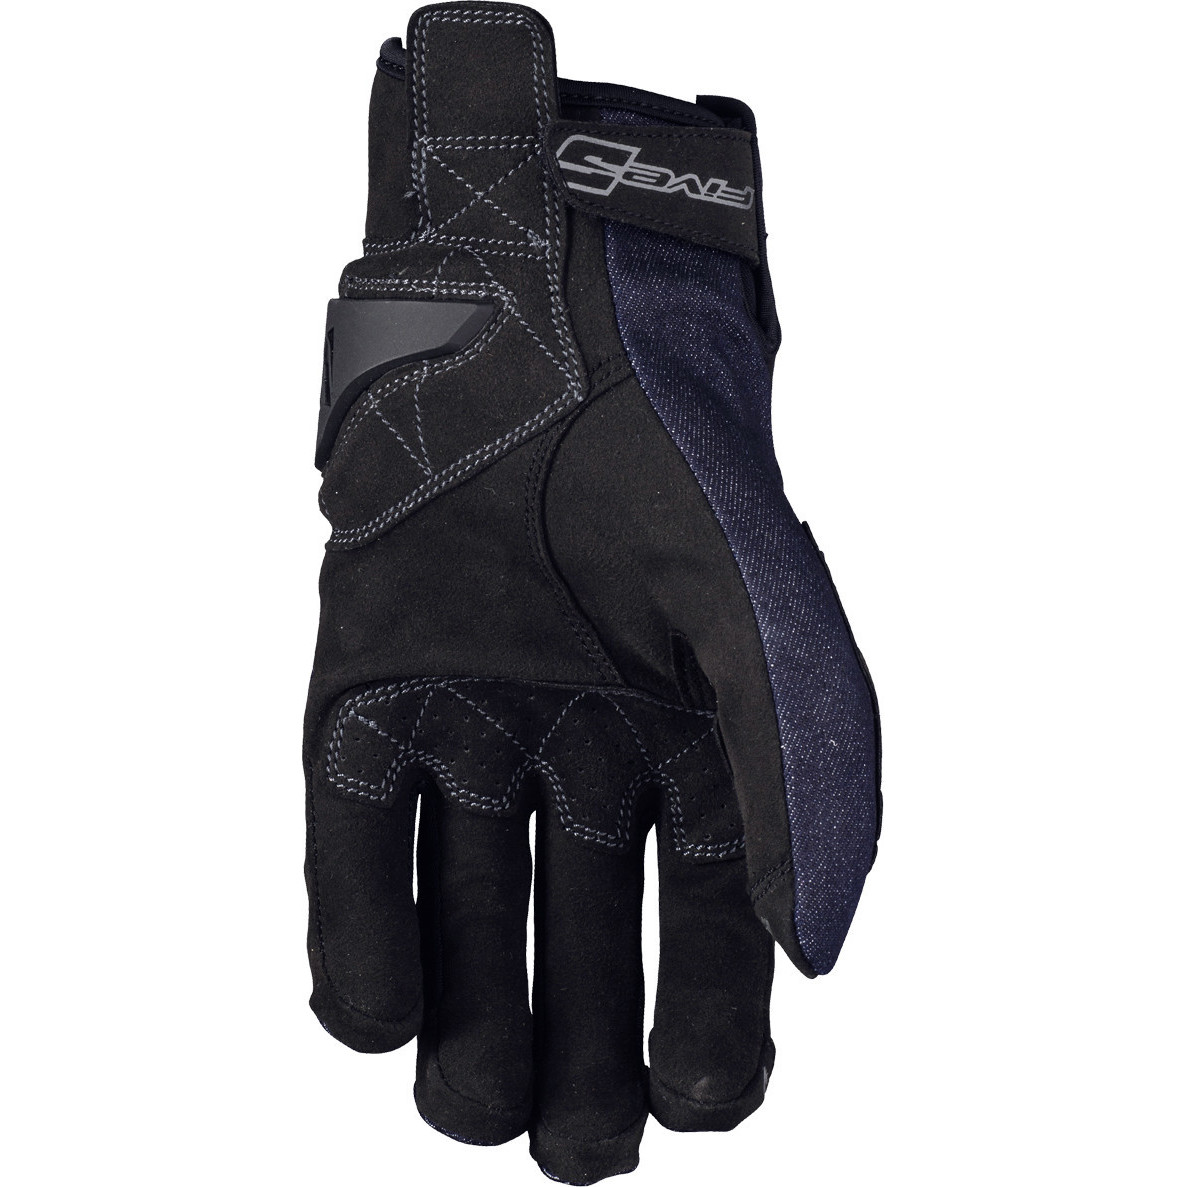 Five-RS3-Motorcycle-Gloves-Motorbike-Bike-Armour-Urban-Touch-Screen-GhostBikes thumbnail 8